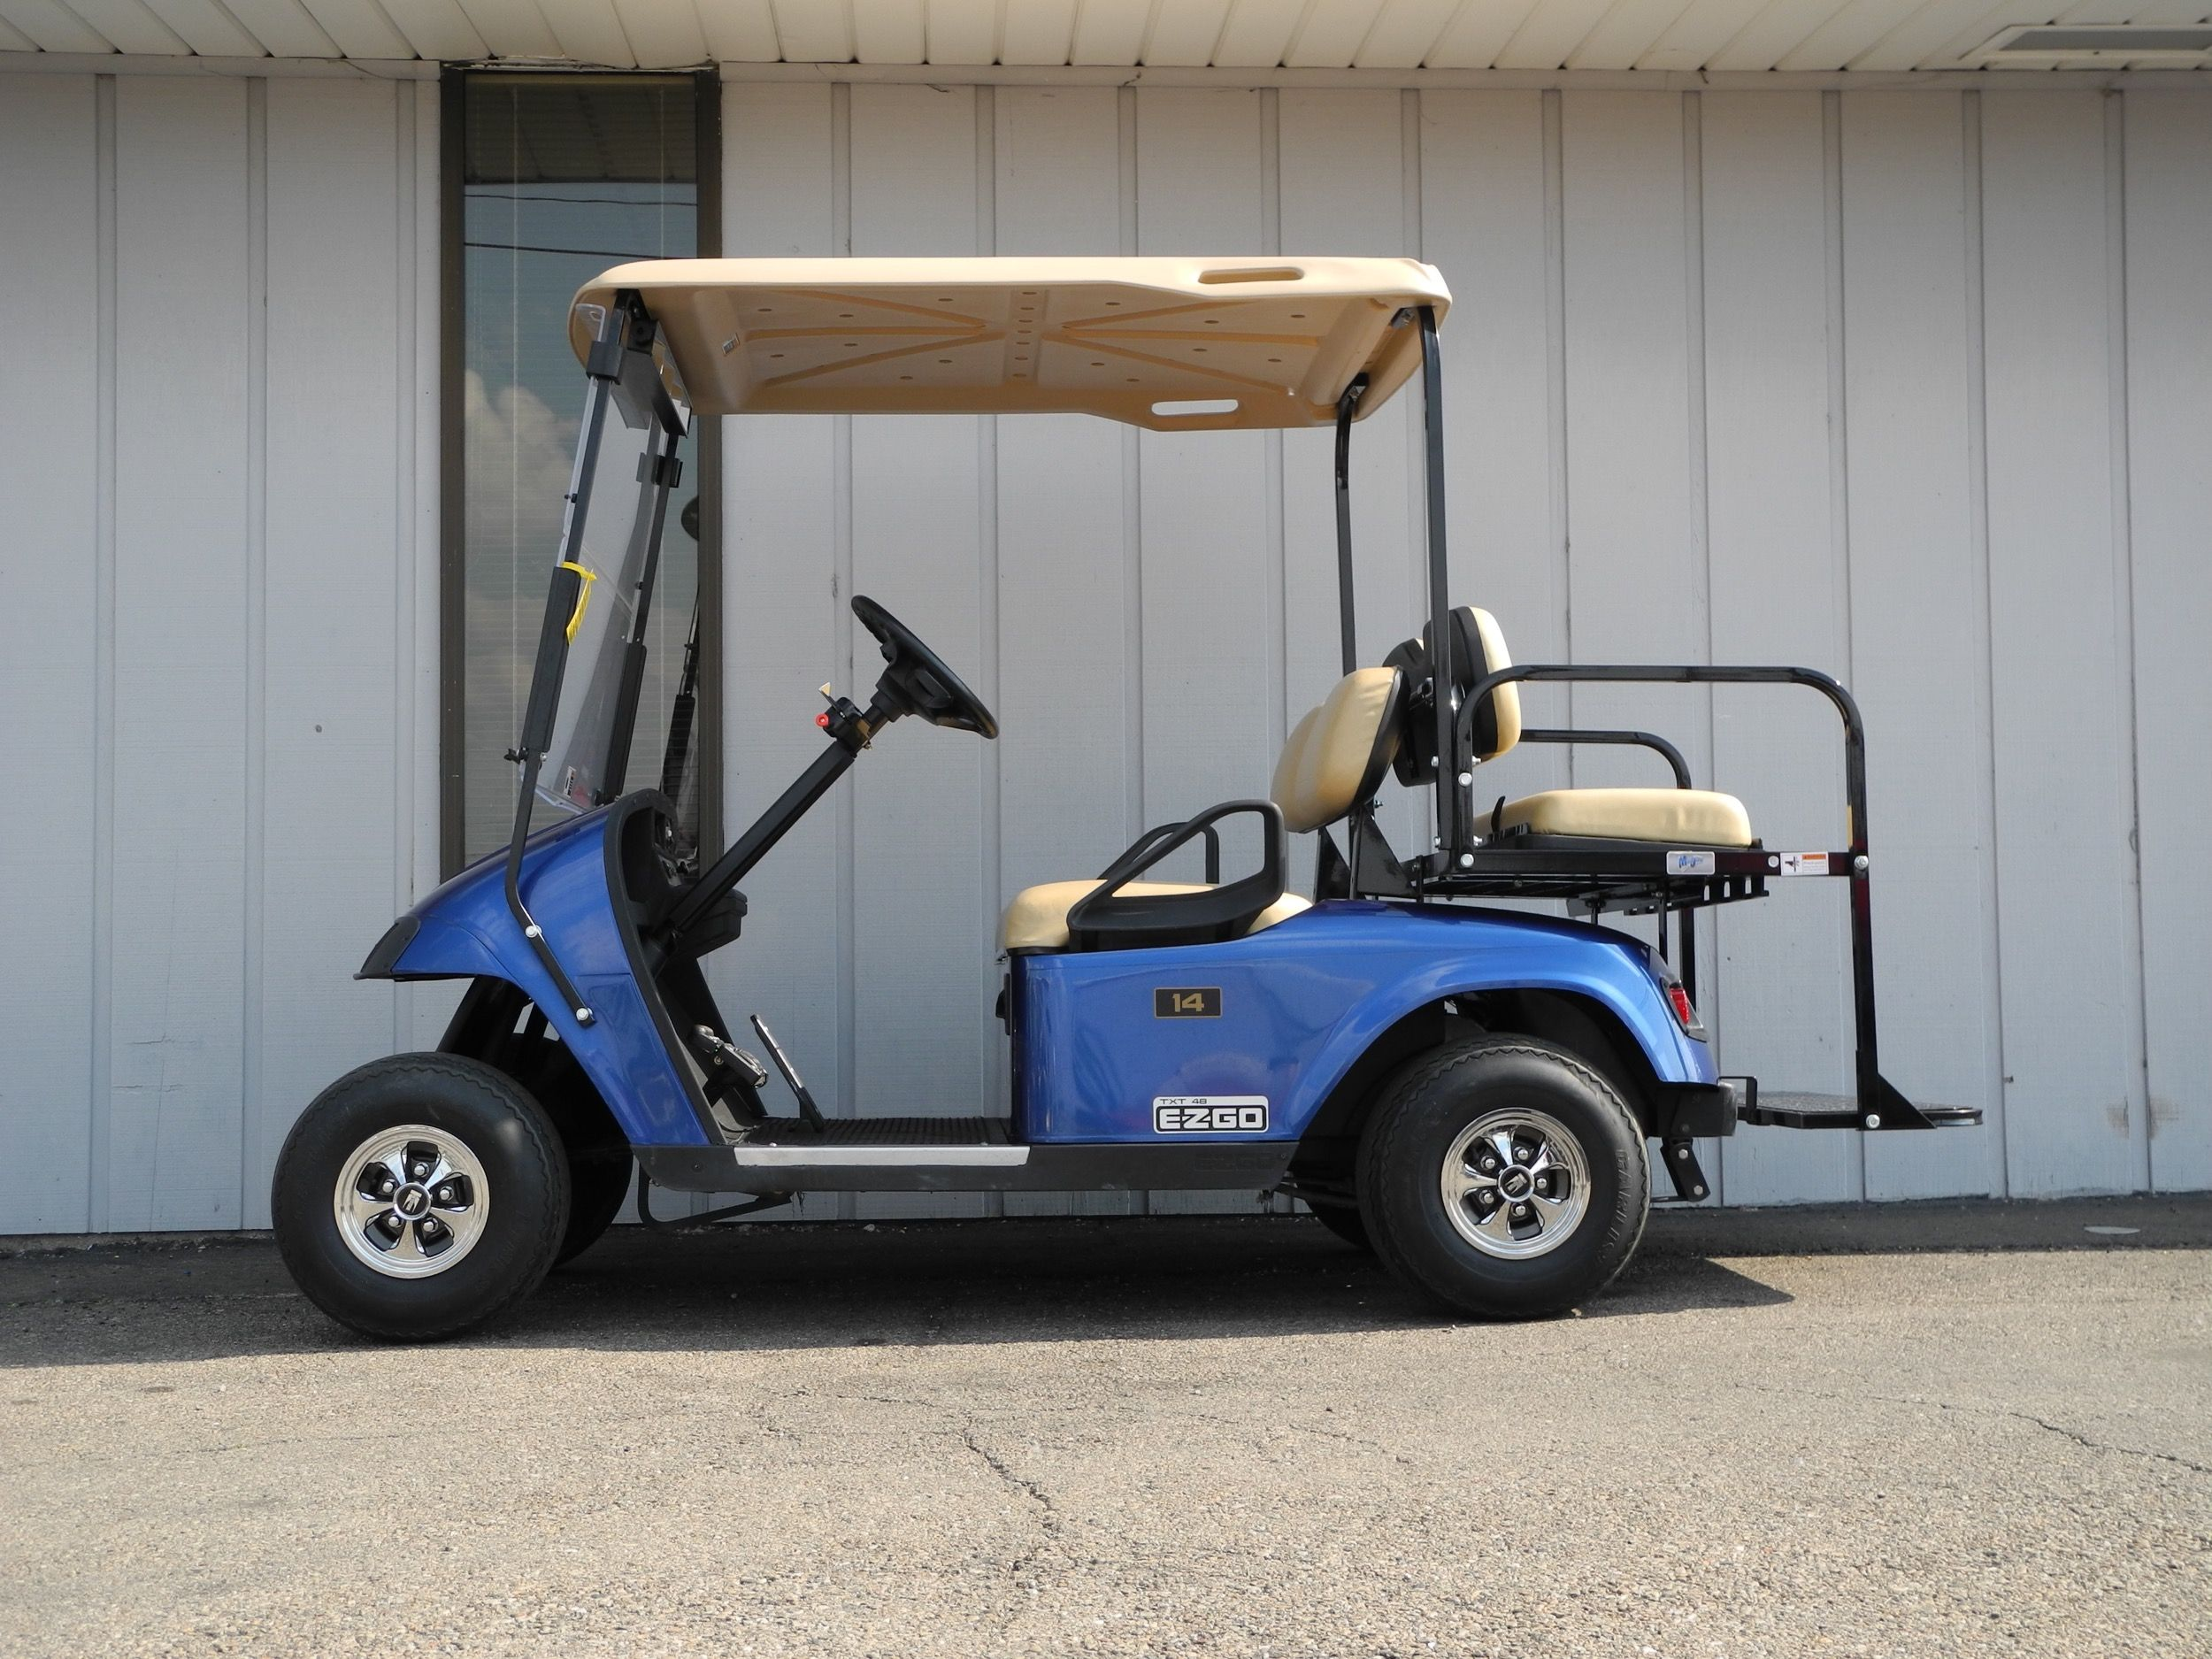 This 2012 E Z Go Pds Electric Golf Car Is Street Ready With Premium Lights Folding Windshield Rear View Mirror Stand Golf Cart Batteries Golf Carts Golf Car